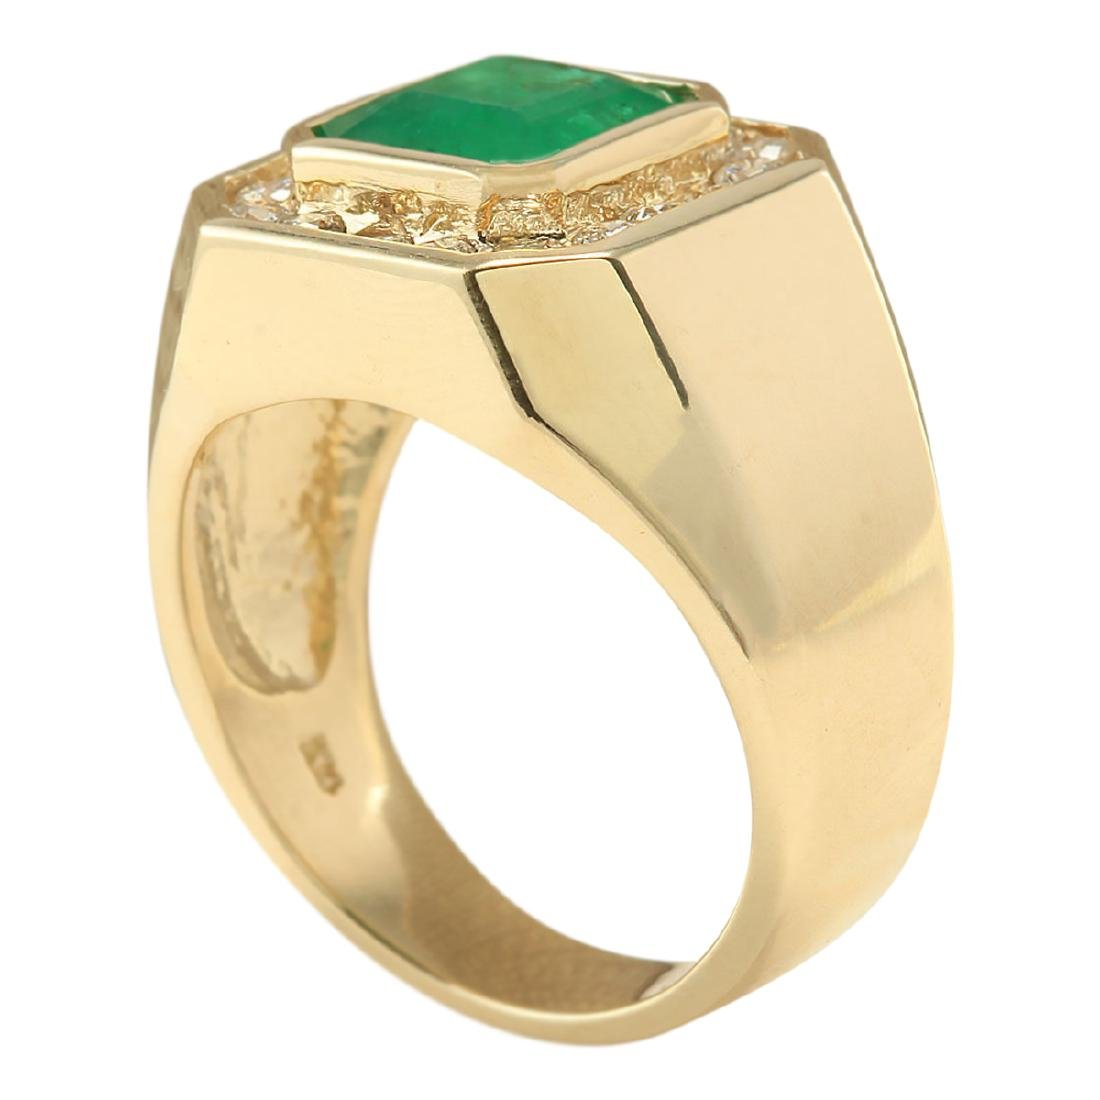 4.26 CTW Natural Emerald And Diamond Ring In 18K Yellow - 3